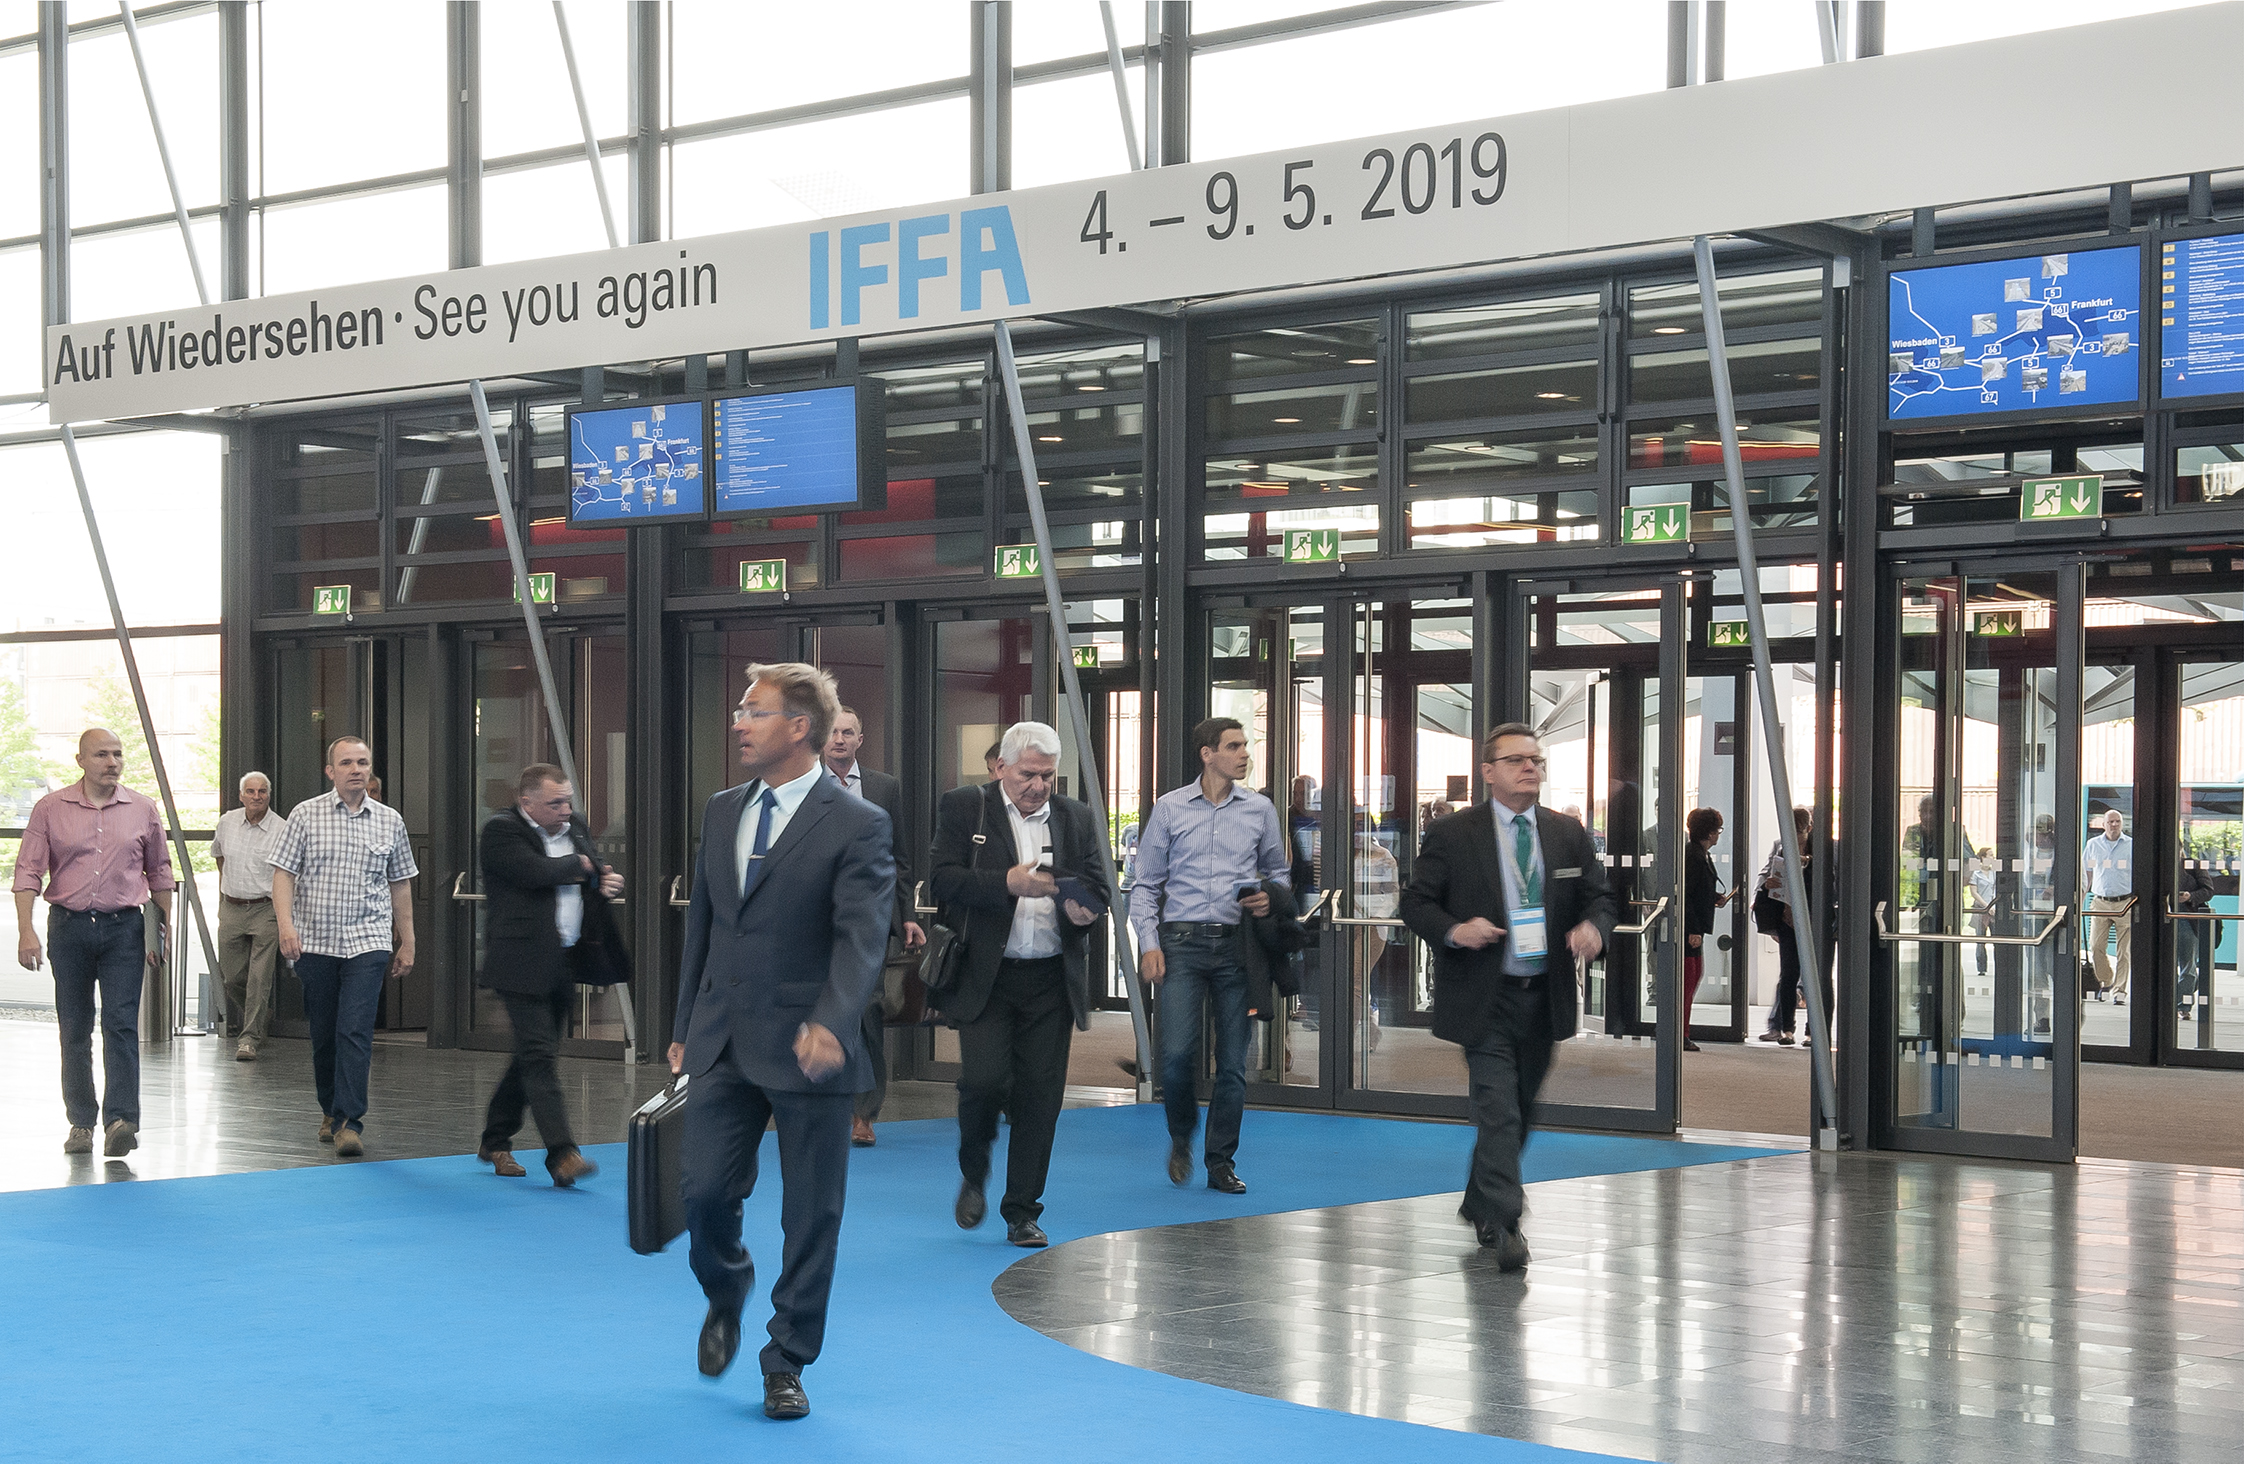 Registration for IFFA 2019